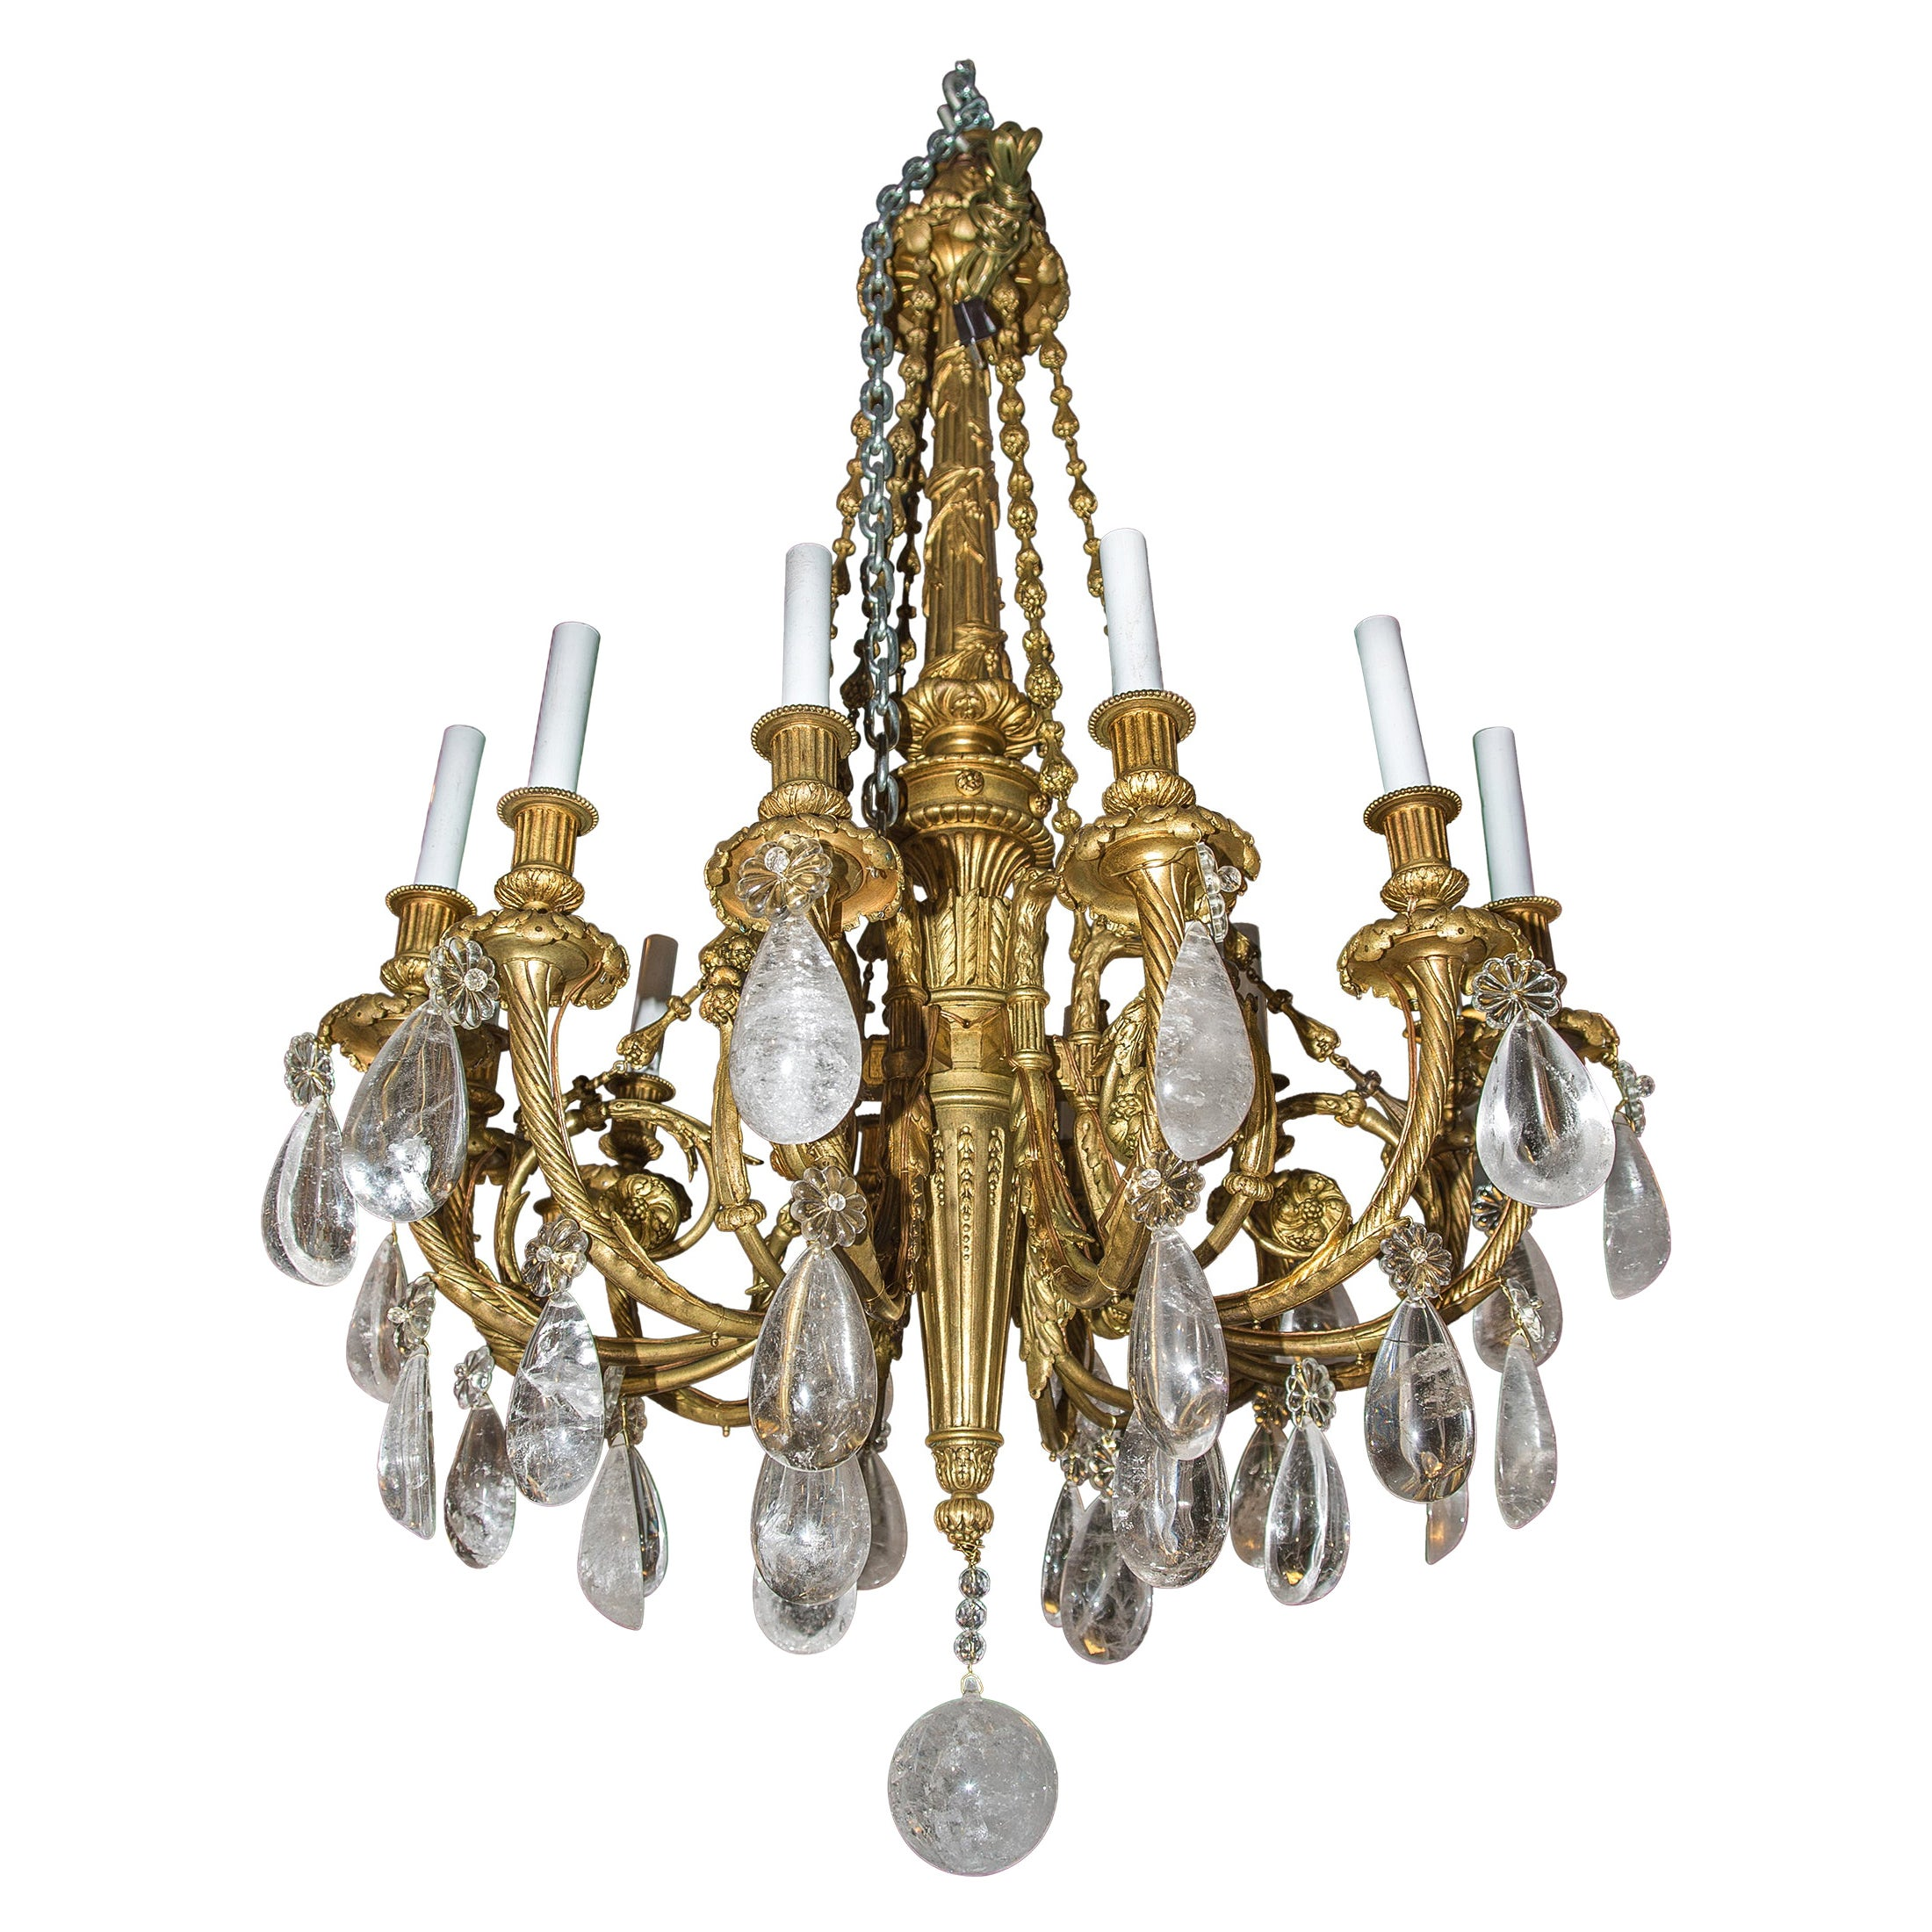 19th Century French Gilt Bronze and Rock Crystal Twelve-Light Chandelier